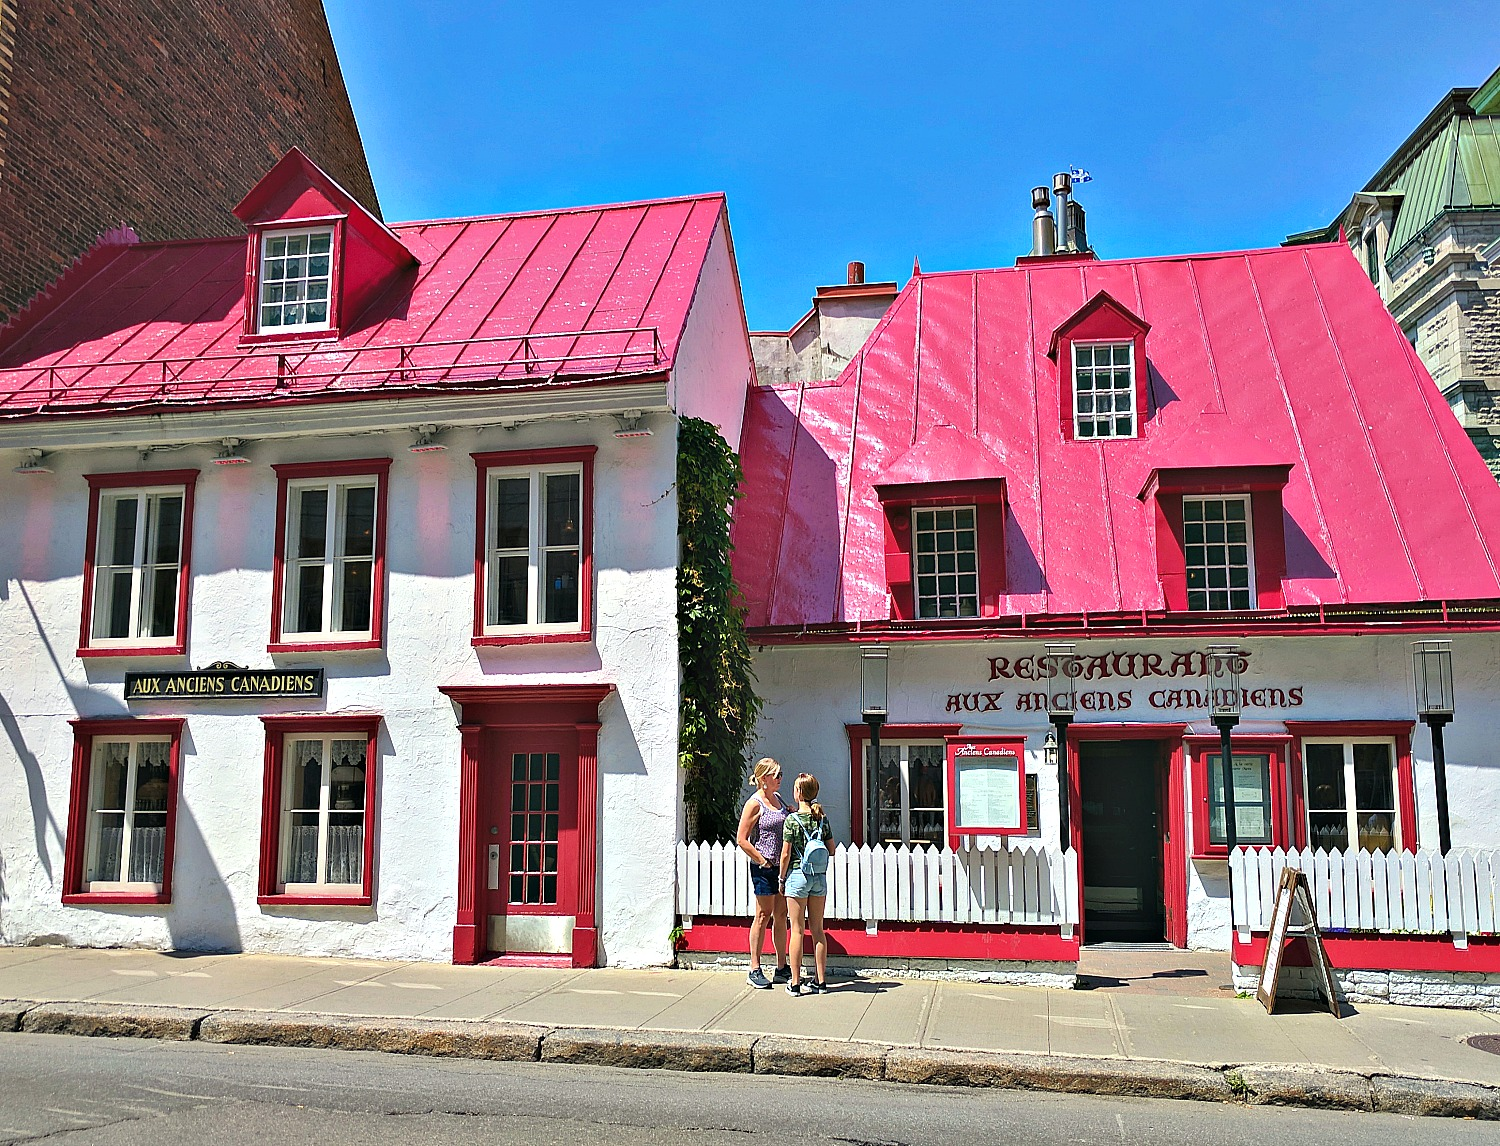 Colorful houses in the Old Town Quebec City.